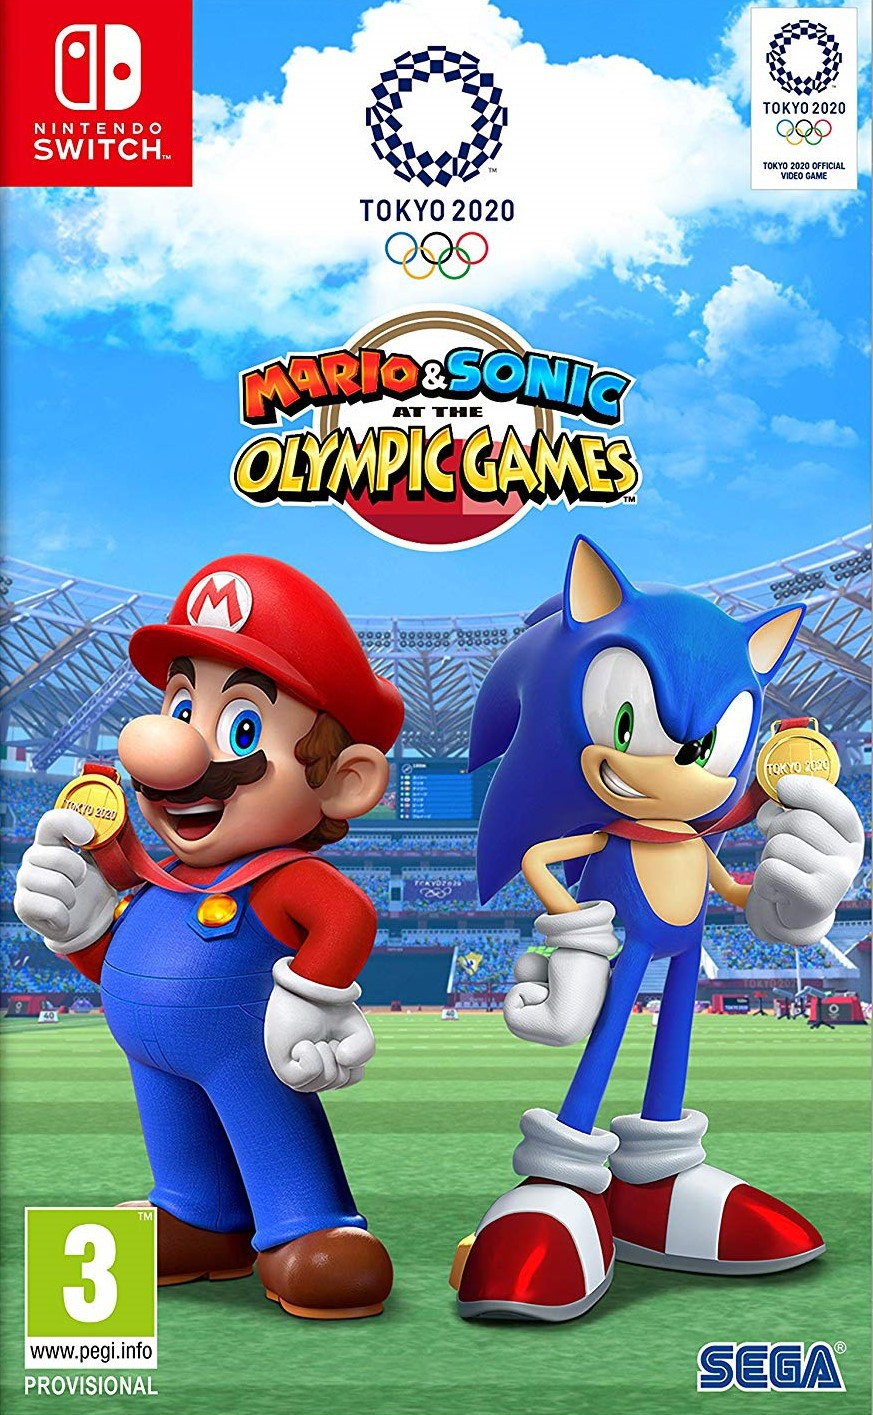 Nintendo Switch Upcoming Games 2020.Mario Sonic At The Olympic Games Tokyo 2020